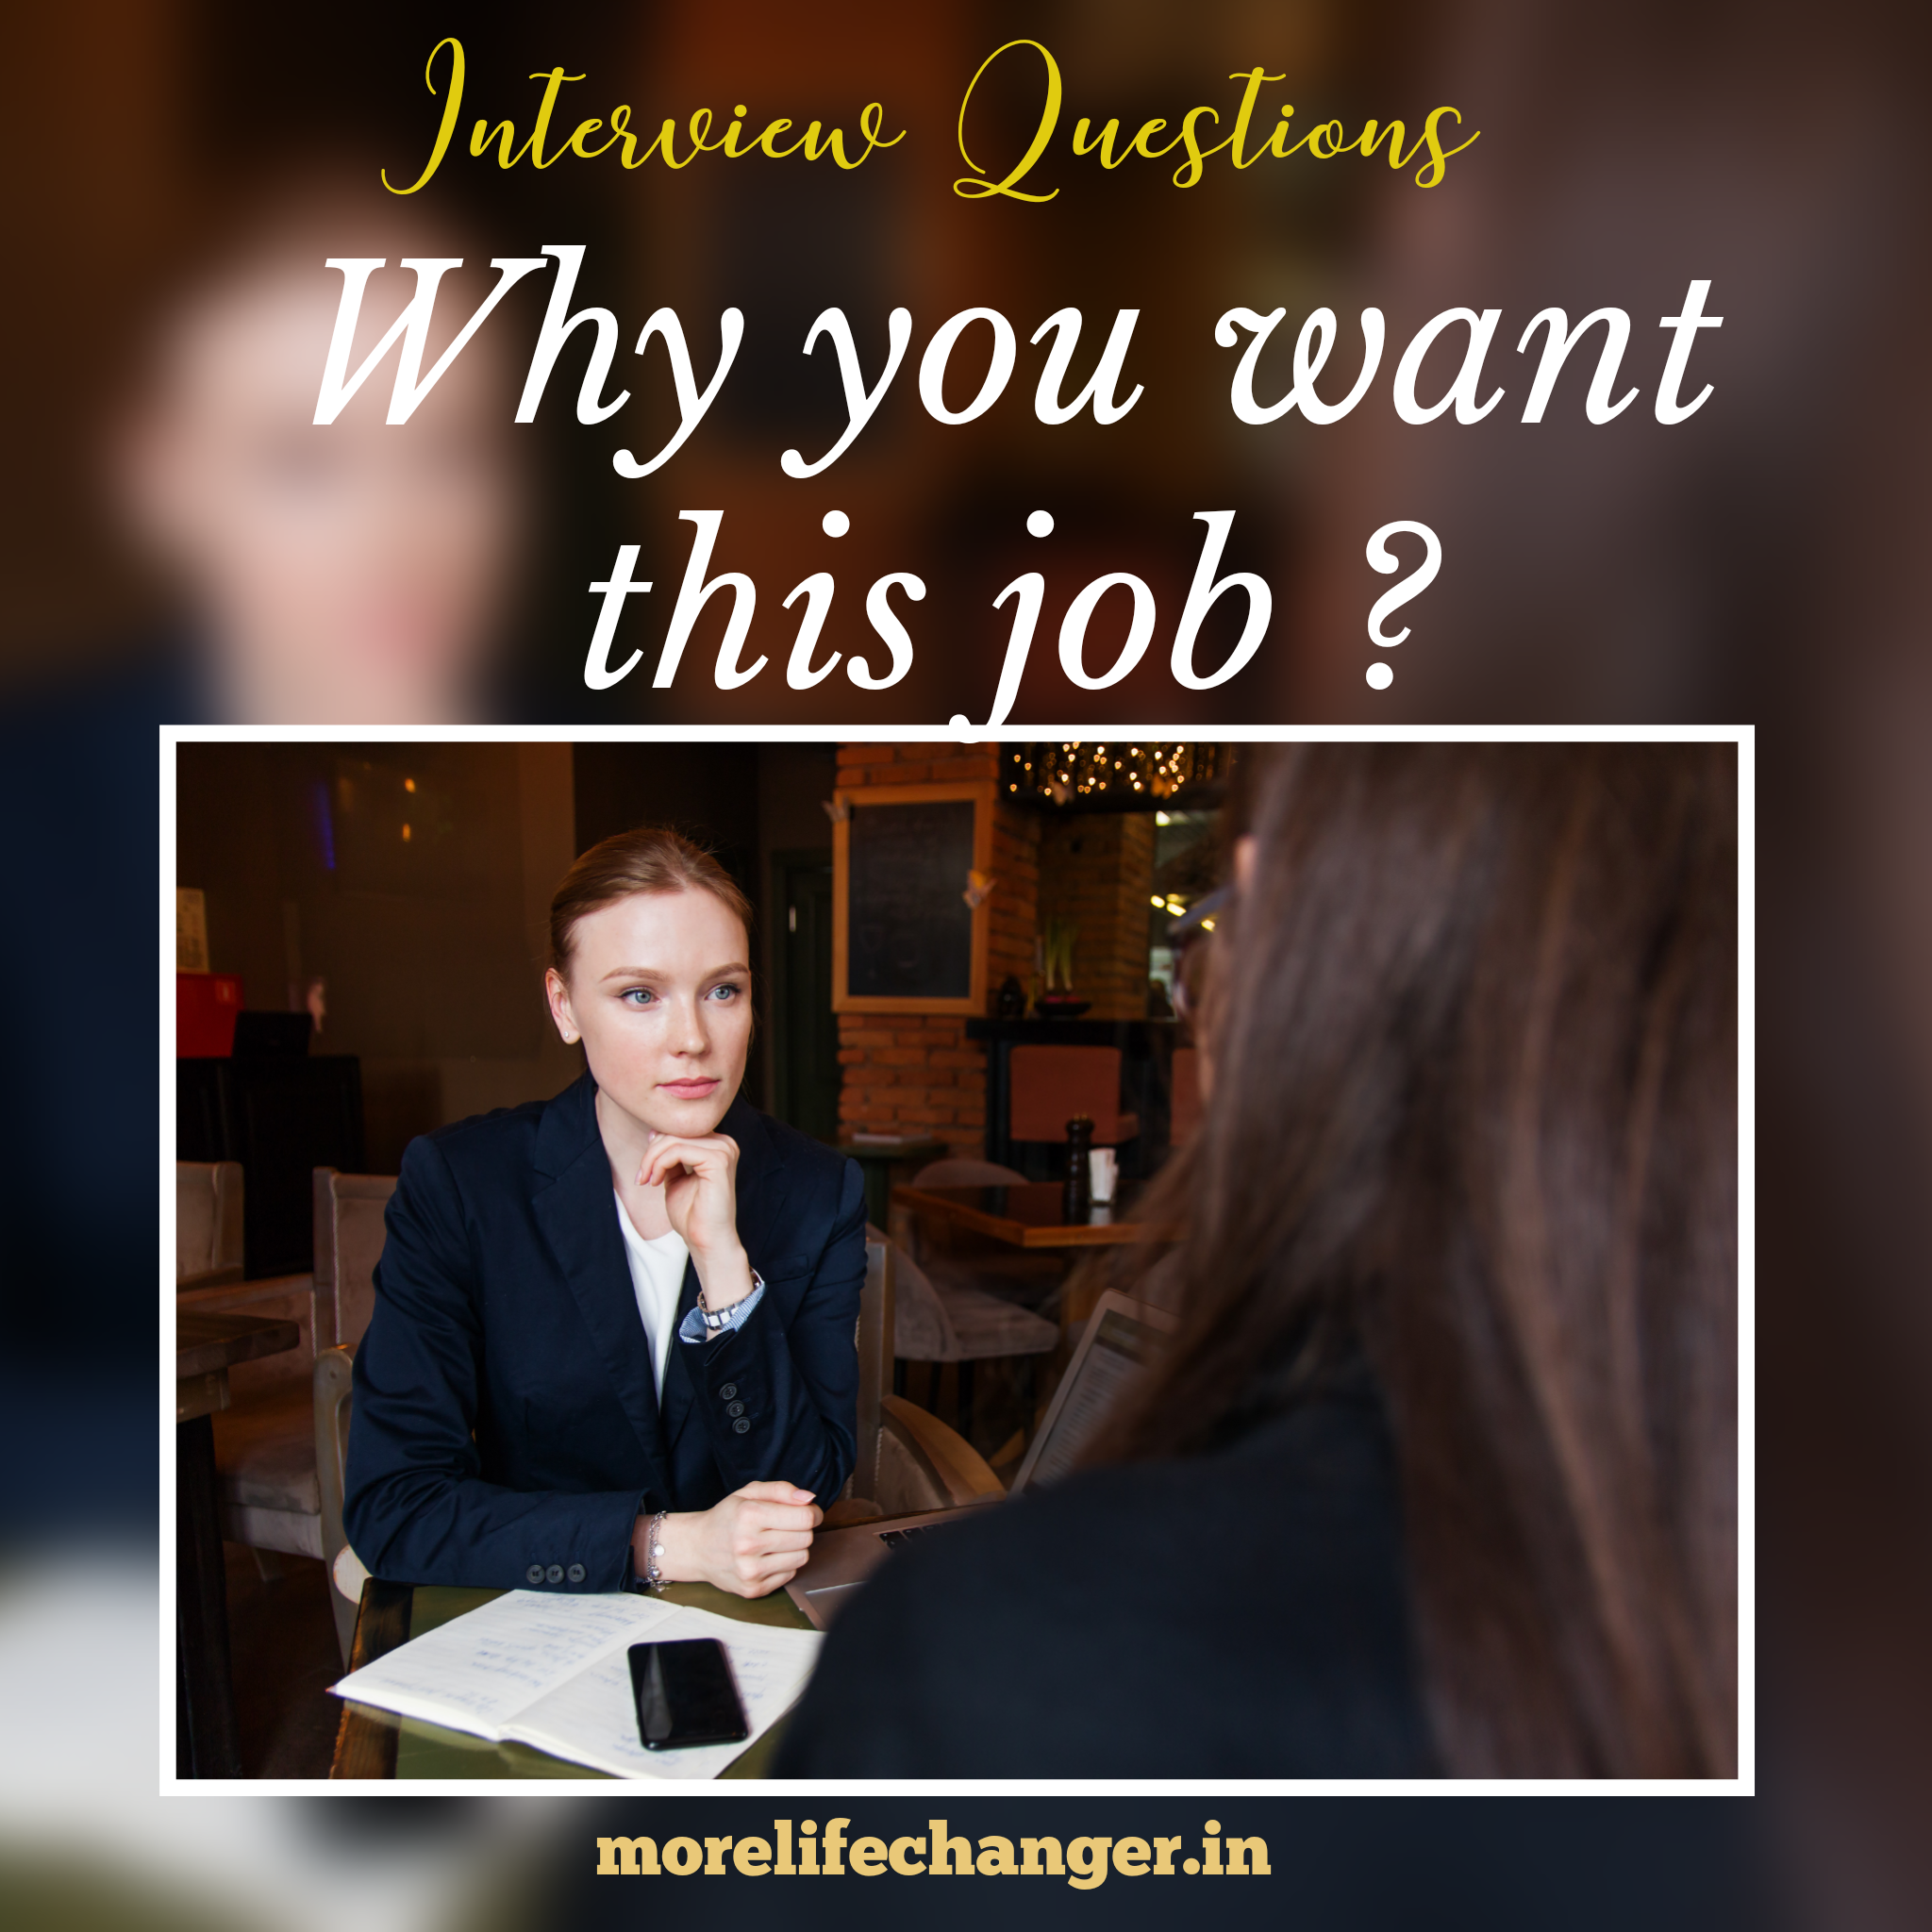 story- Why do you want this job